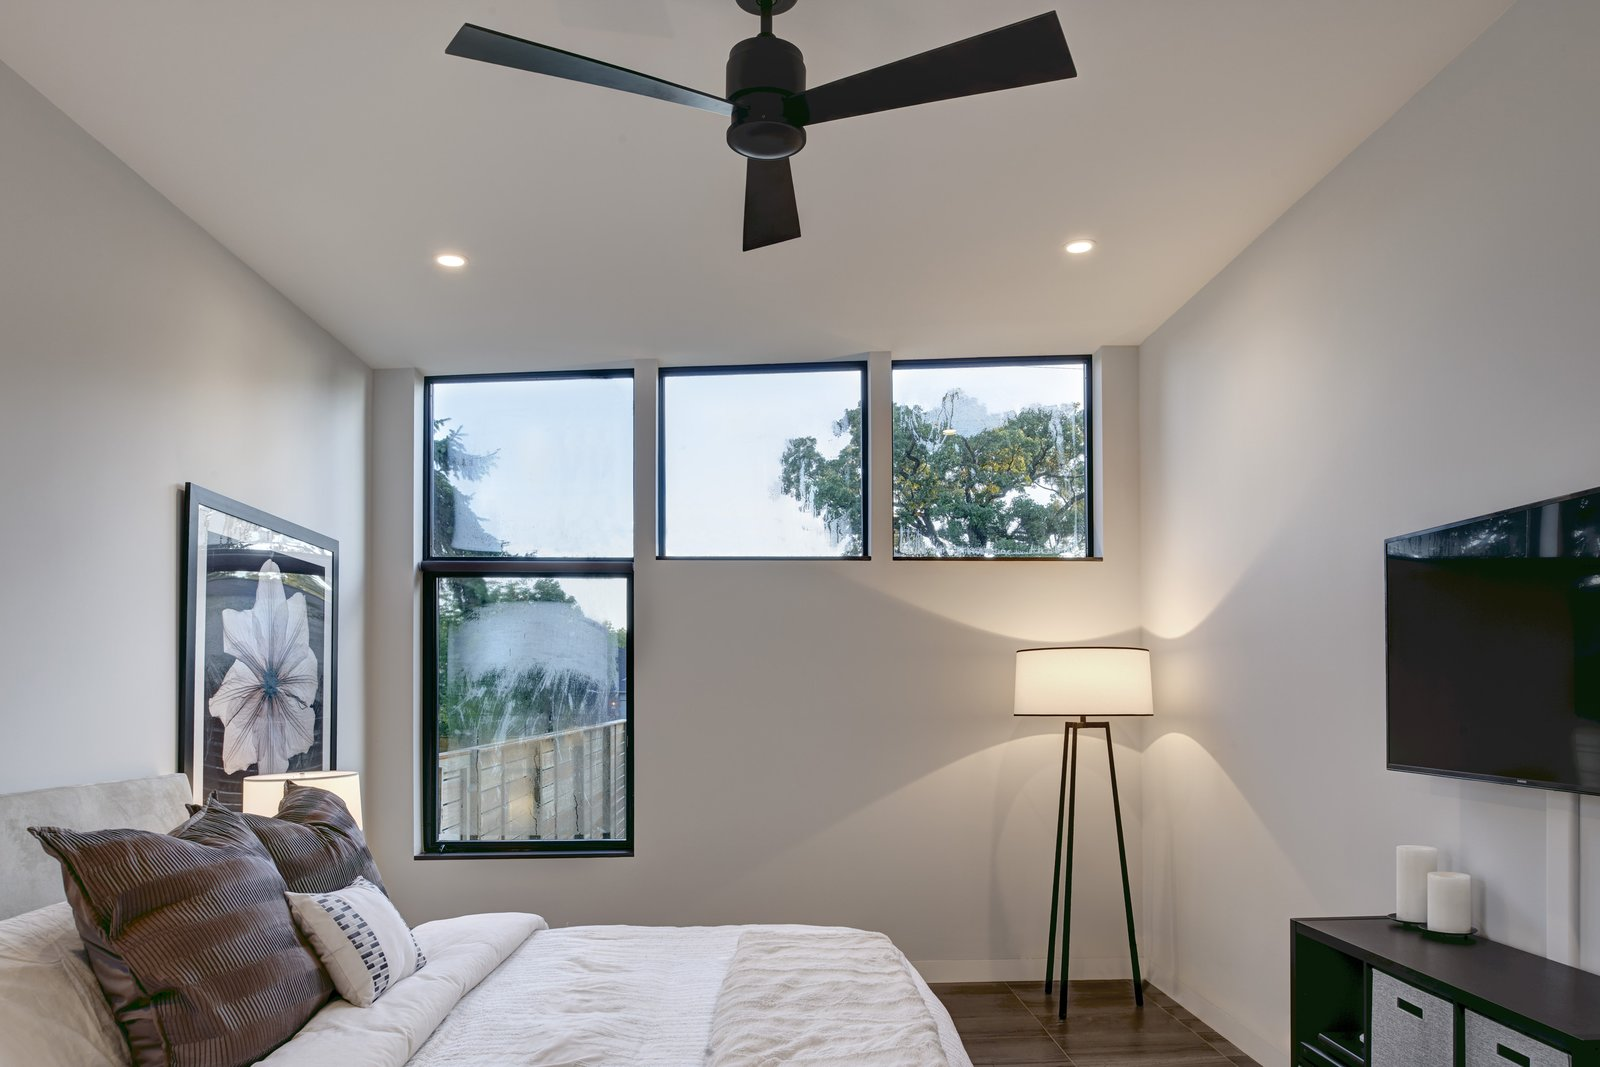 Bedroom, Bed, Lamps, Shelves, Storage, Ceiling Lighting, Recessed Lighting, and Porcelain Tile Floor Reconfigured windows maximize daylight in the bedrooms.  Koser I by Neumann Monson Architects